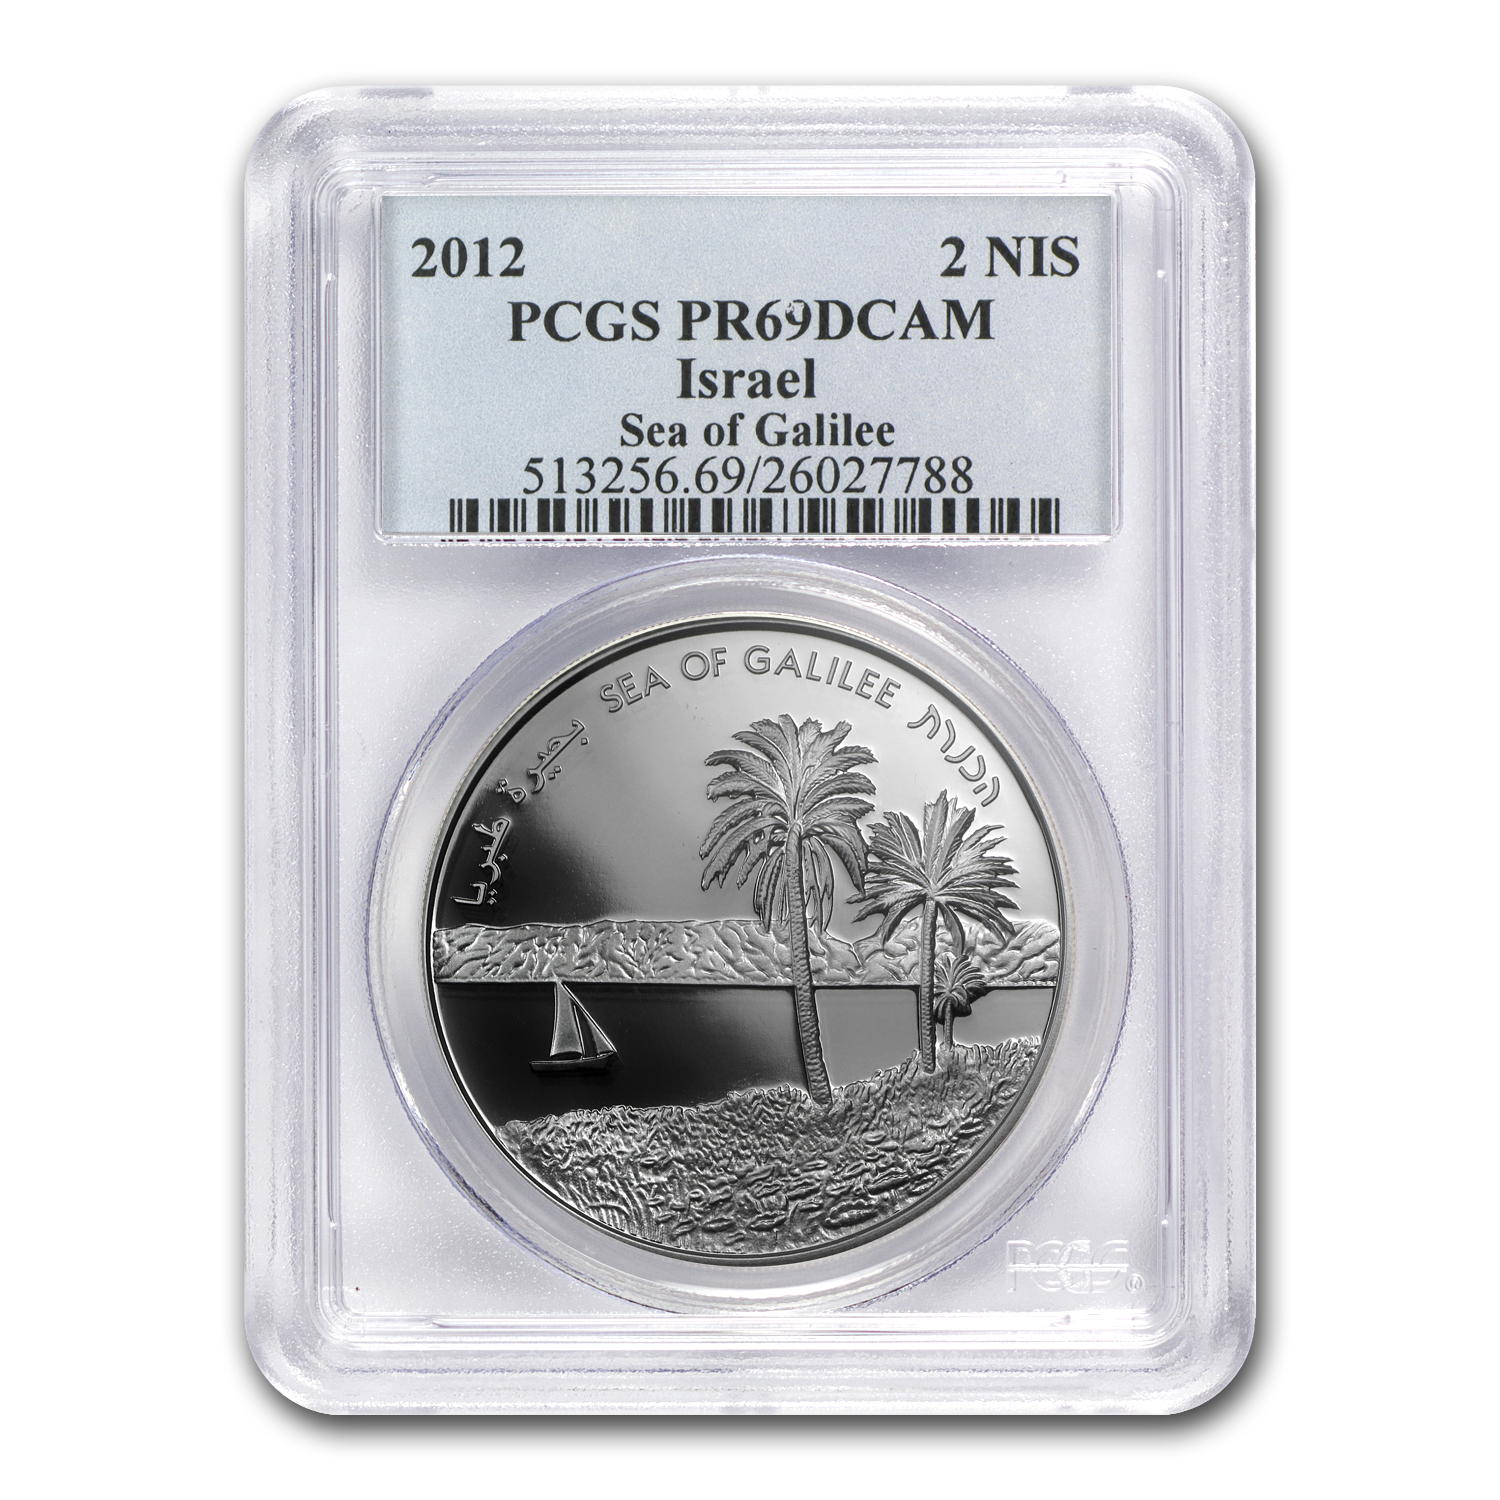 2012 Israel Sea of Galilee Silver 2 NIS PR-69 PCGS